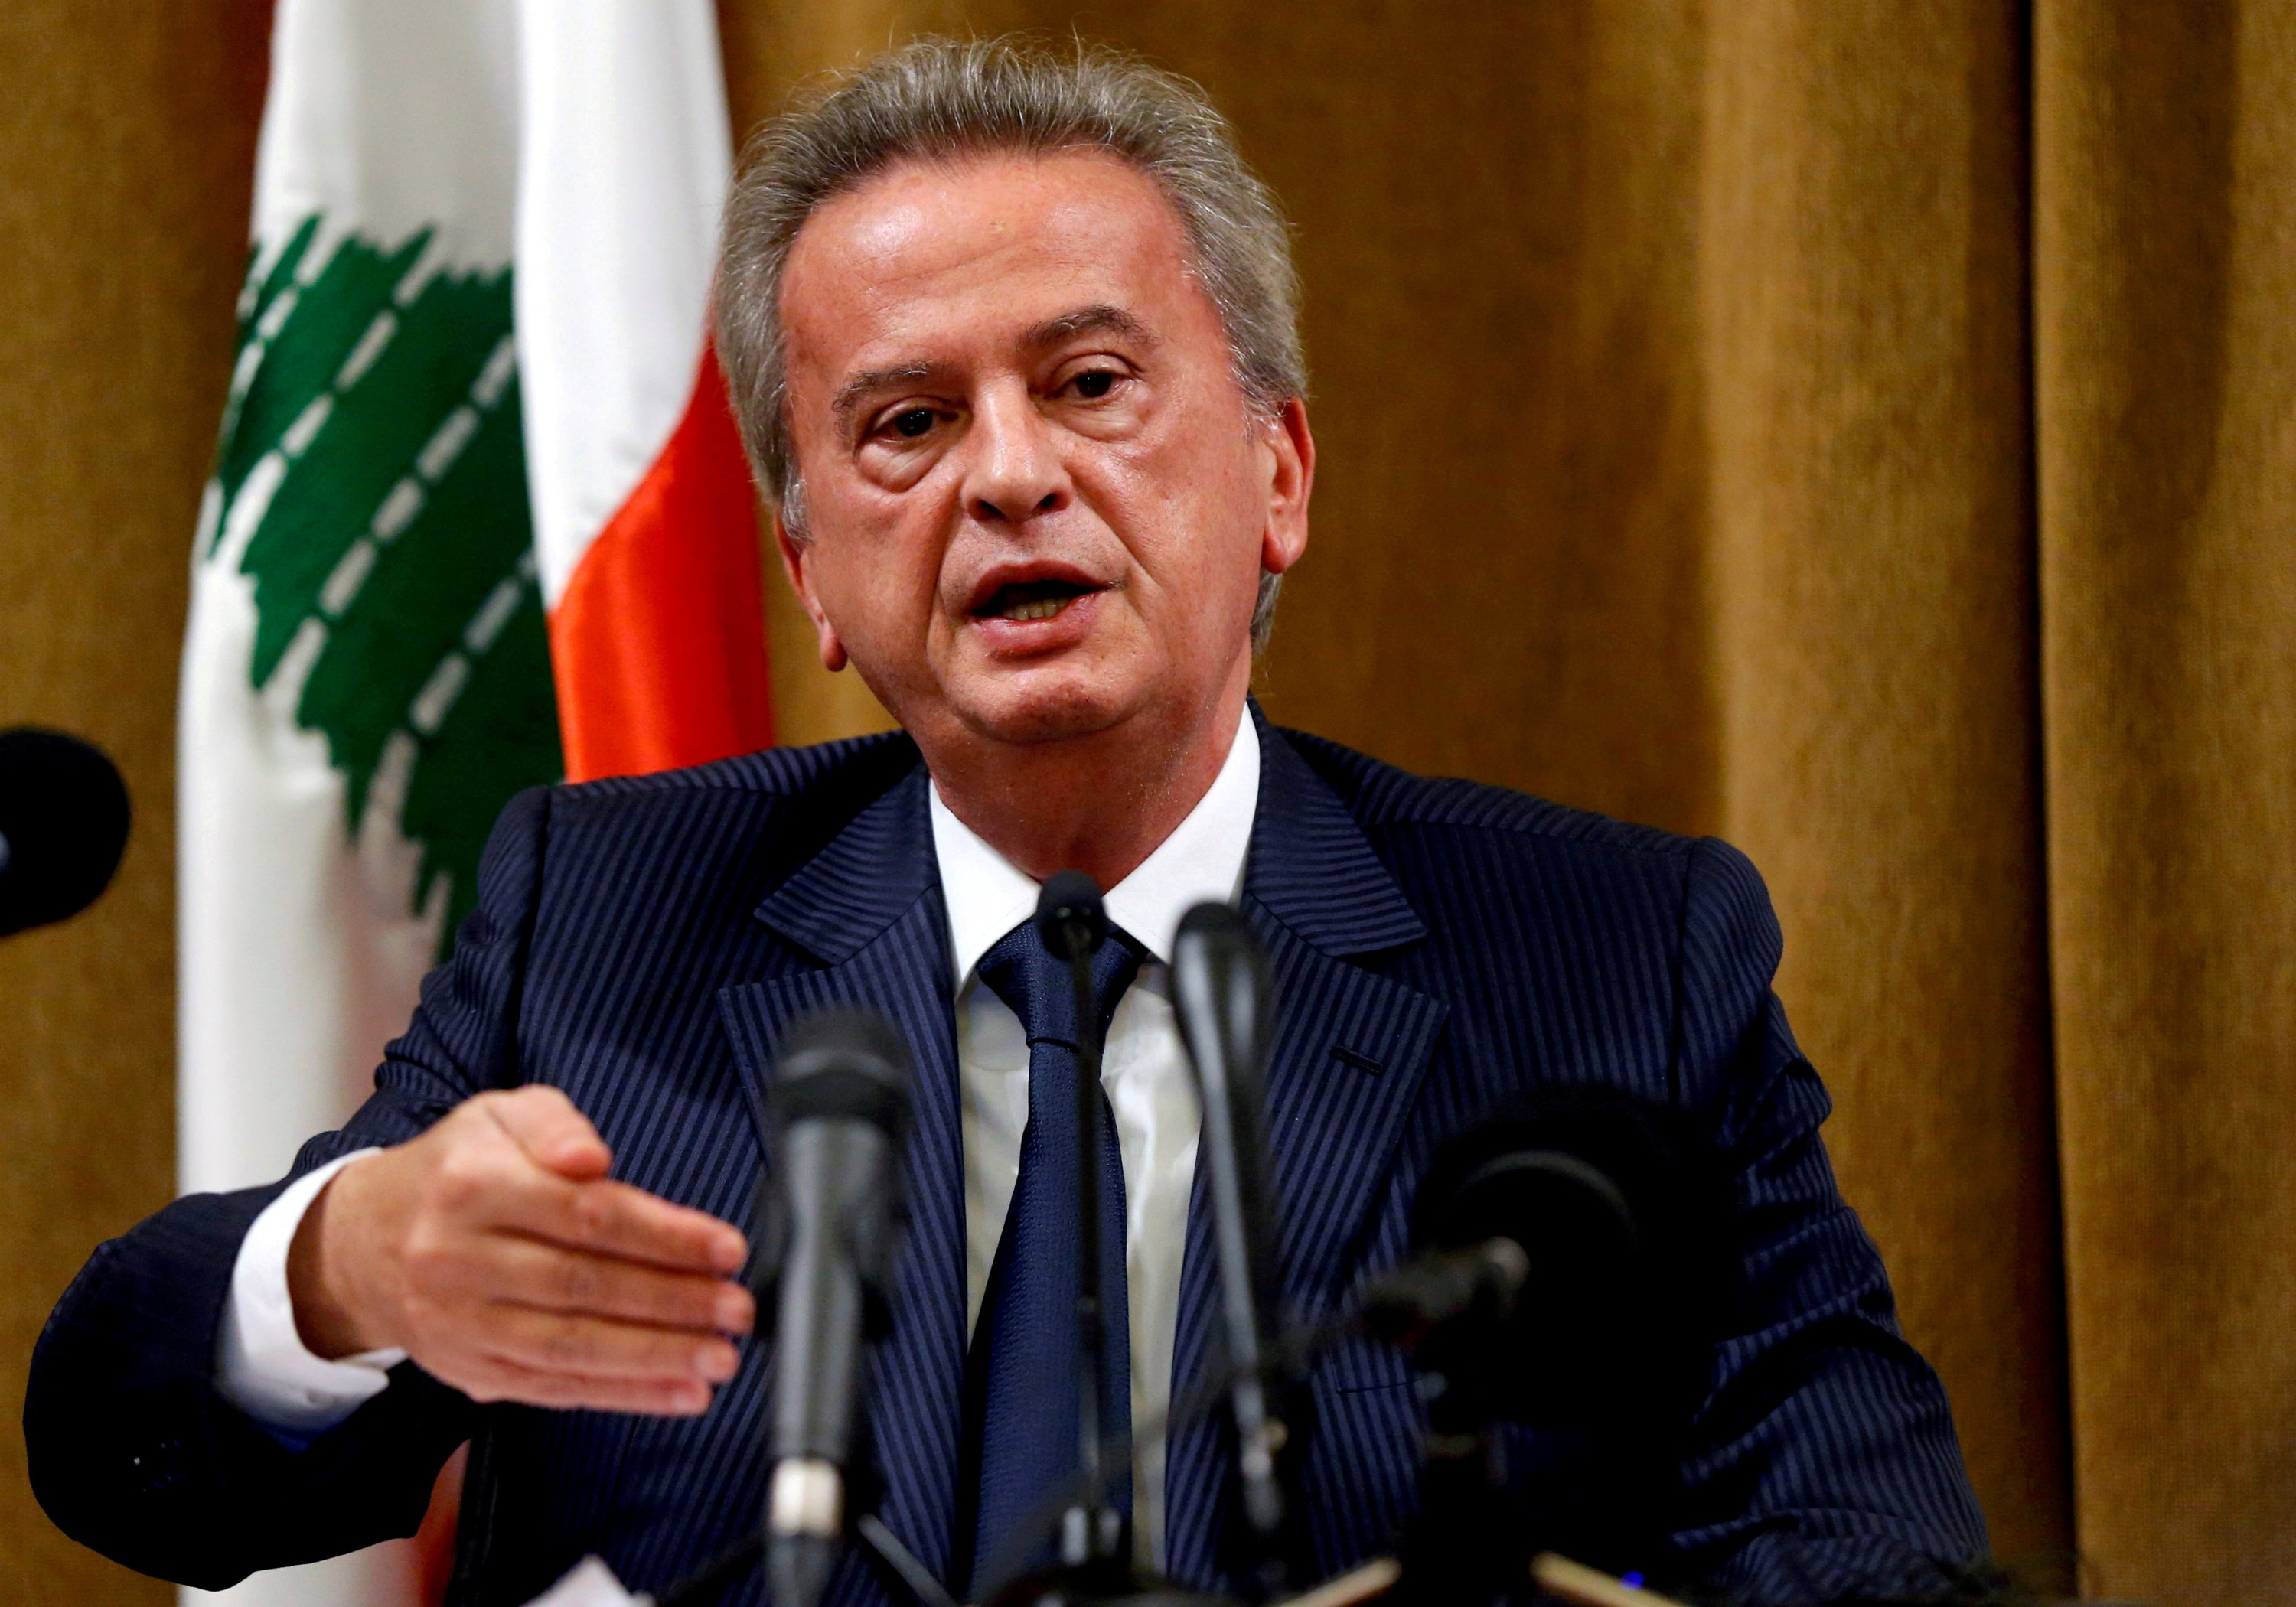 Lebanon's Central Bank Governor Riad Salameh speaks during a news conference at Central Bank in Beirut, Lebanon, Nov. 11, 2019. (Reuters Photo)